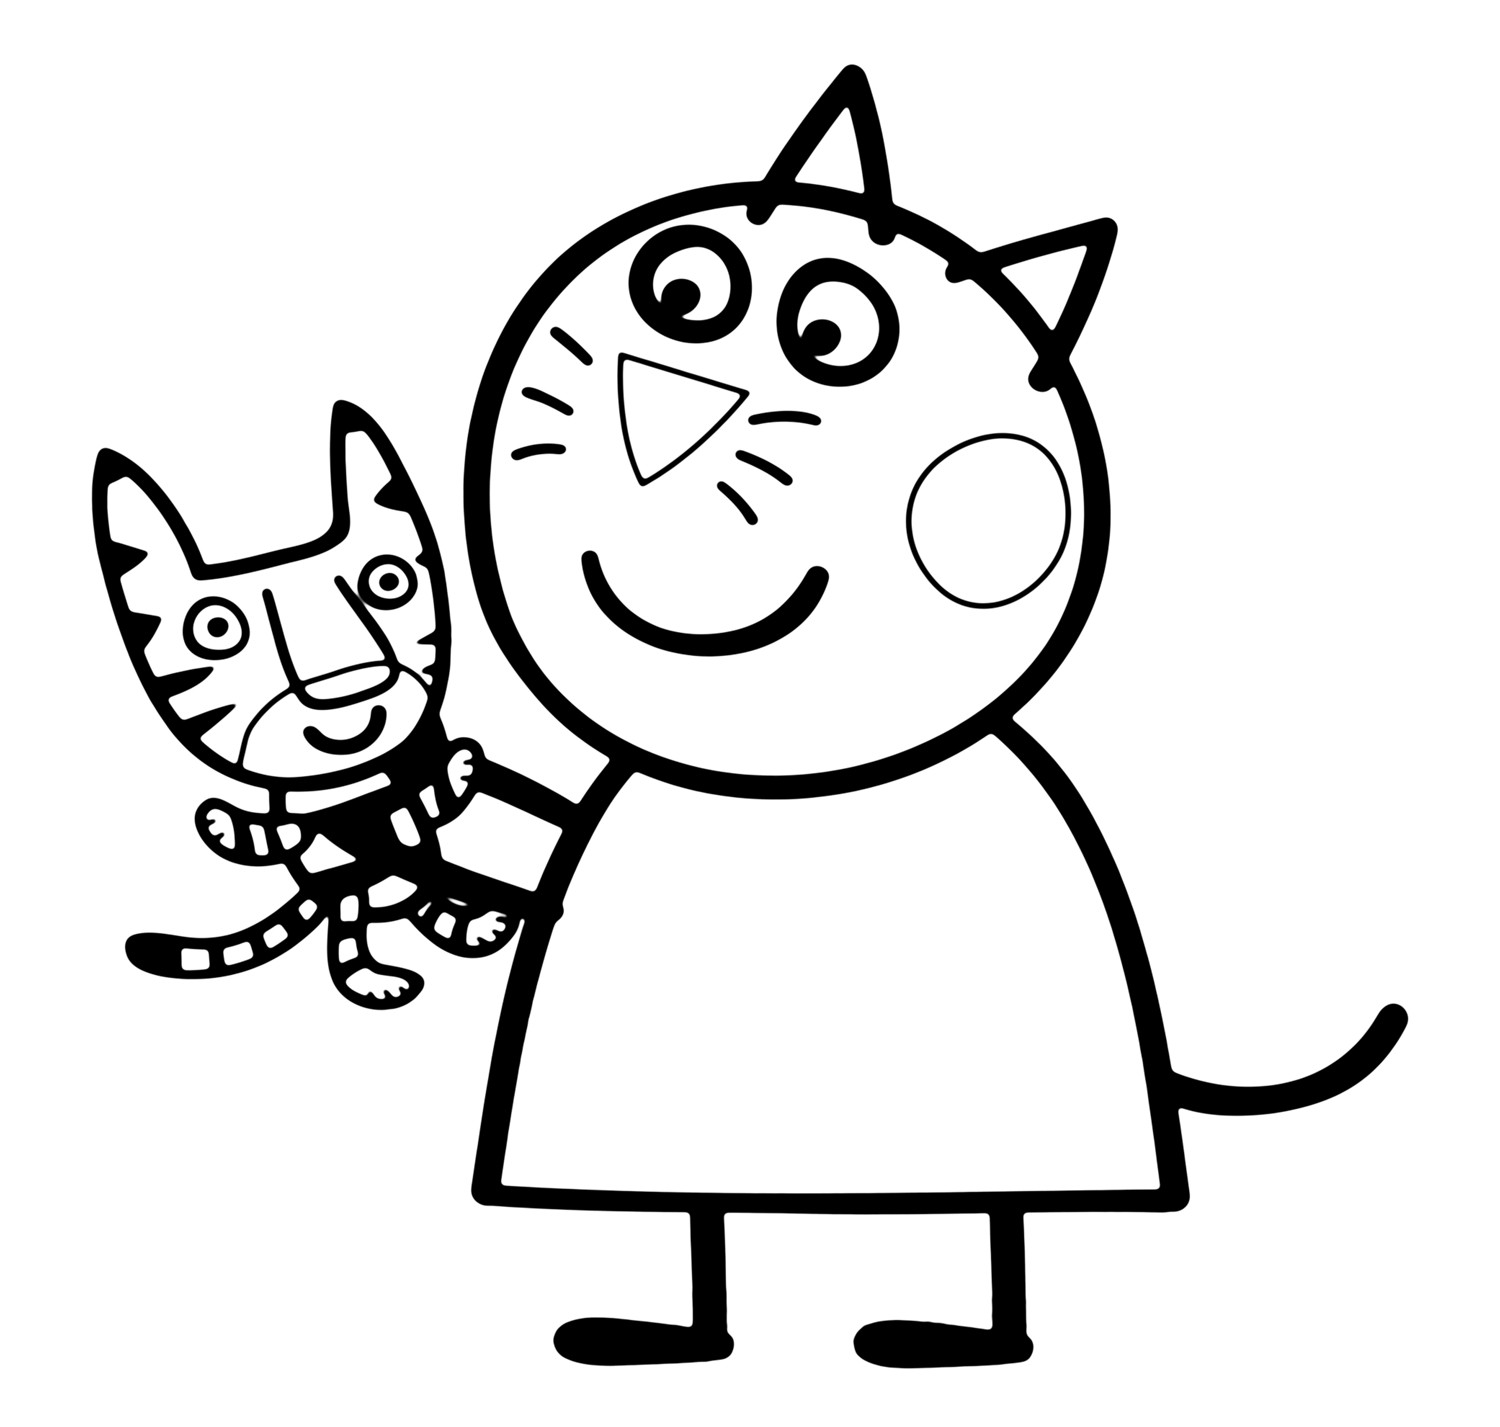 peppa pig colouring pages online the best free peppa coloring page images download from online colouring peppa pig pages